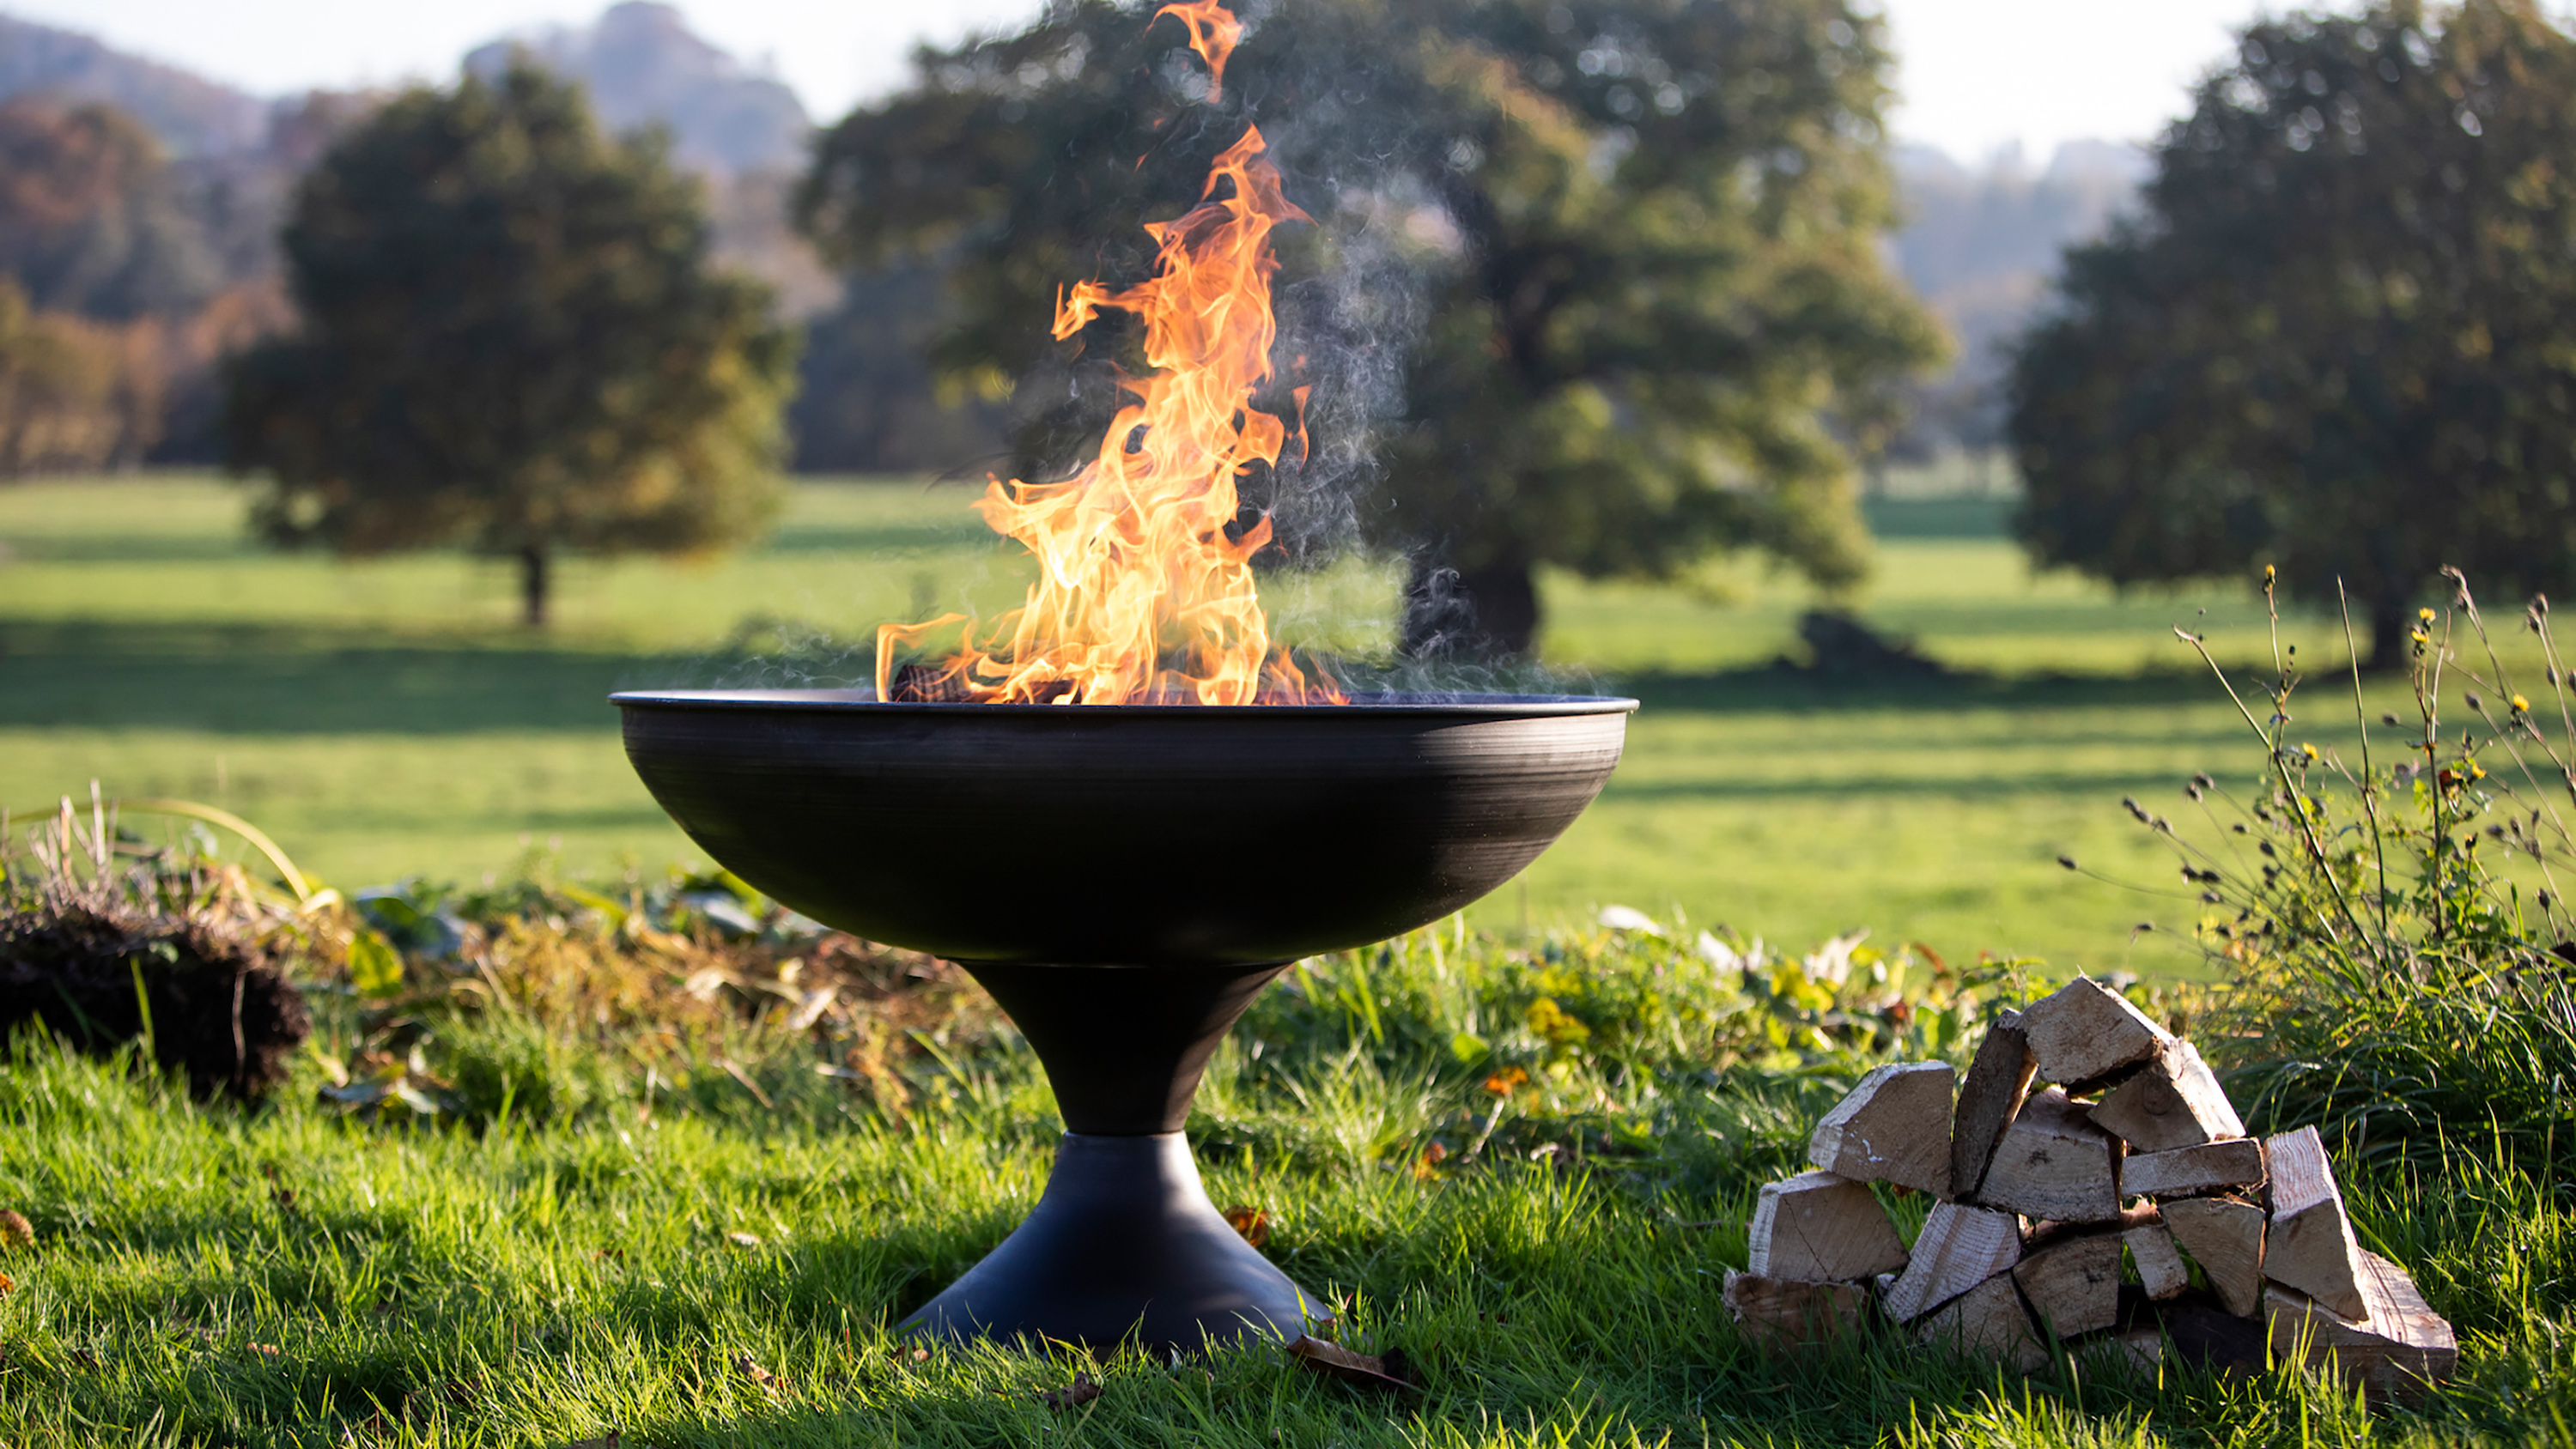 Fire Pit Ideas 19 Ways To Cosy Up After Dark And Create An Enchanting Atmosphere Gardeningetc